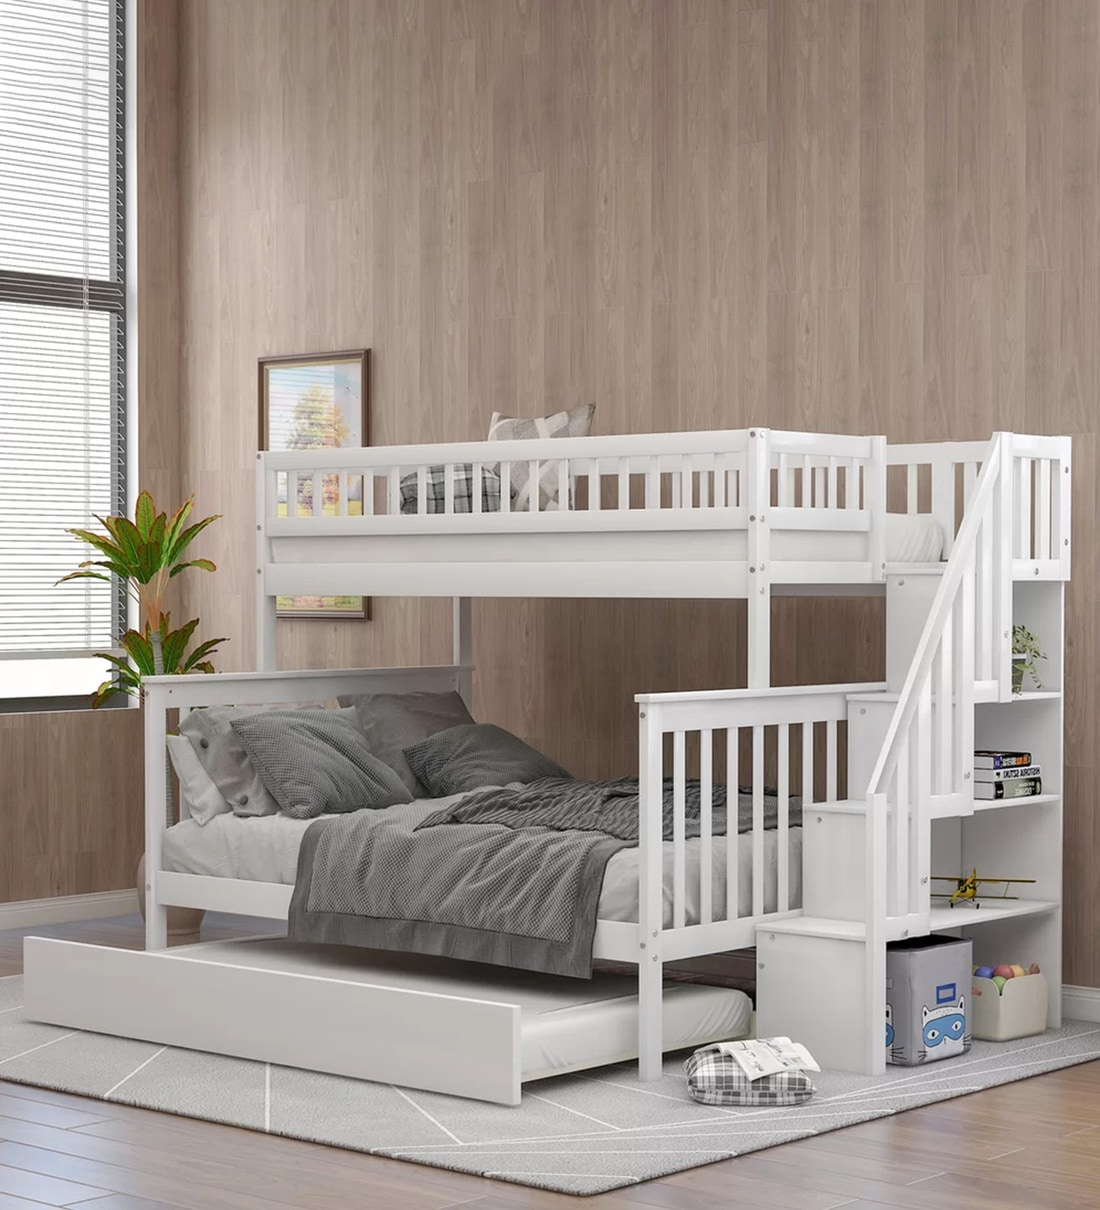 Picture of: Buy Farmhouse Pine Wood Trundle Bunk Bed In White By Casacraft Online Trundle Bunk Beds Bunk Beds Kids Furniture Pepperfry Product